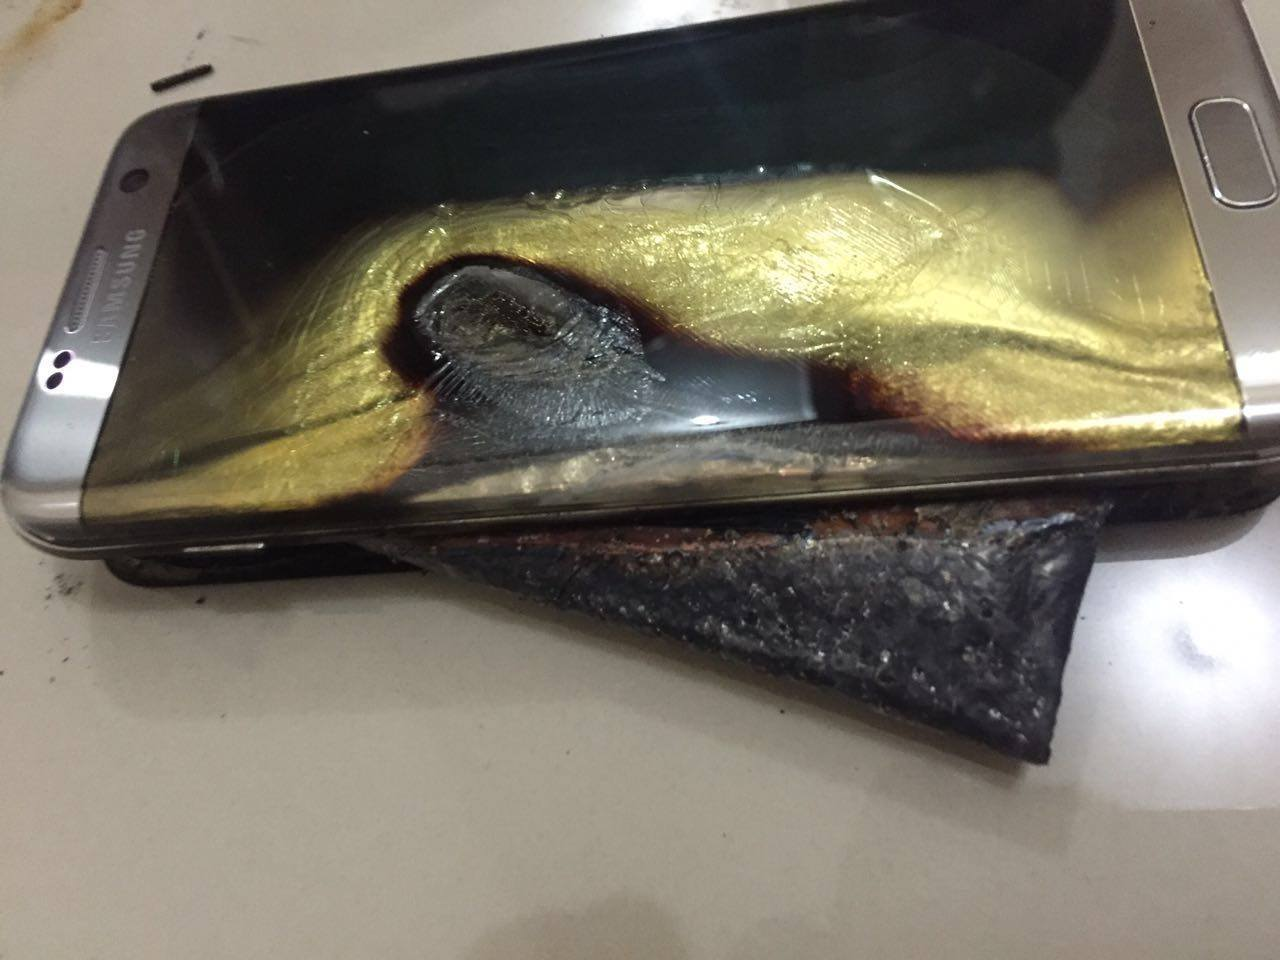 Samsung Now Facing Reports of Galaxy S7 Edge Fires